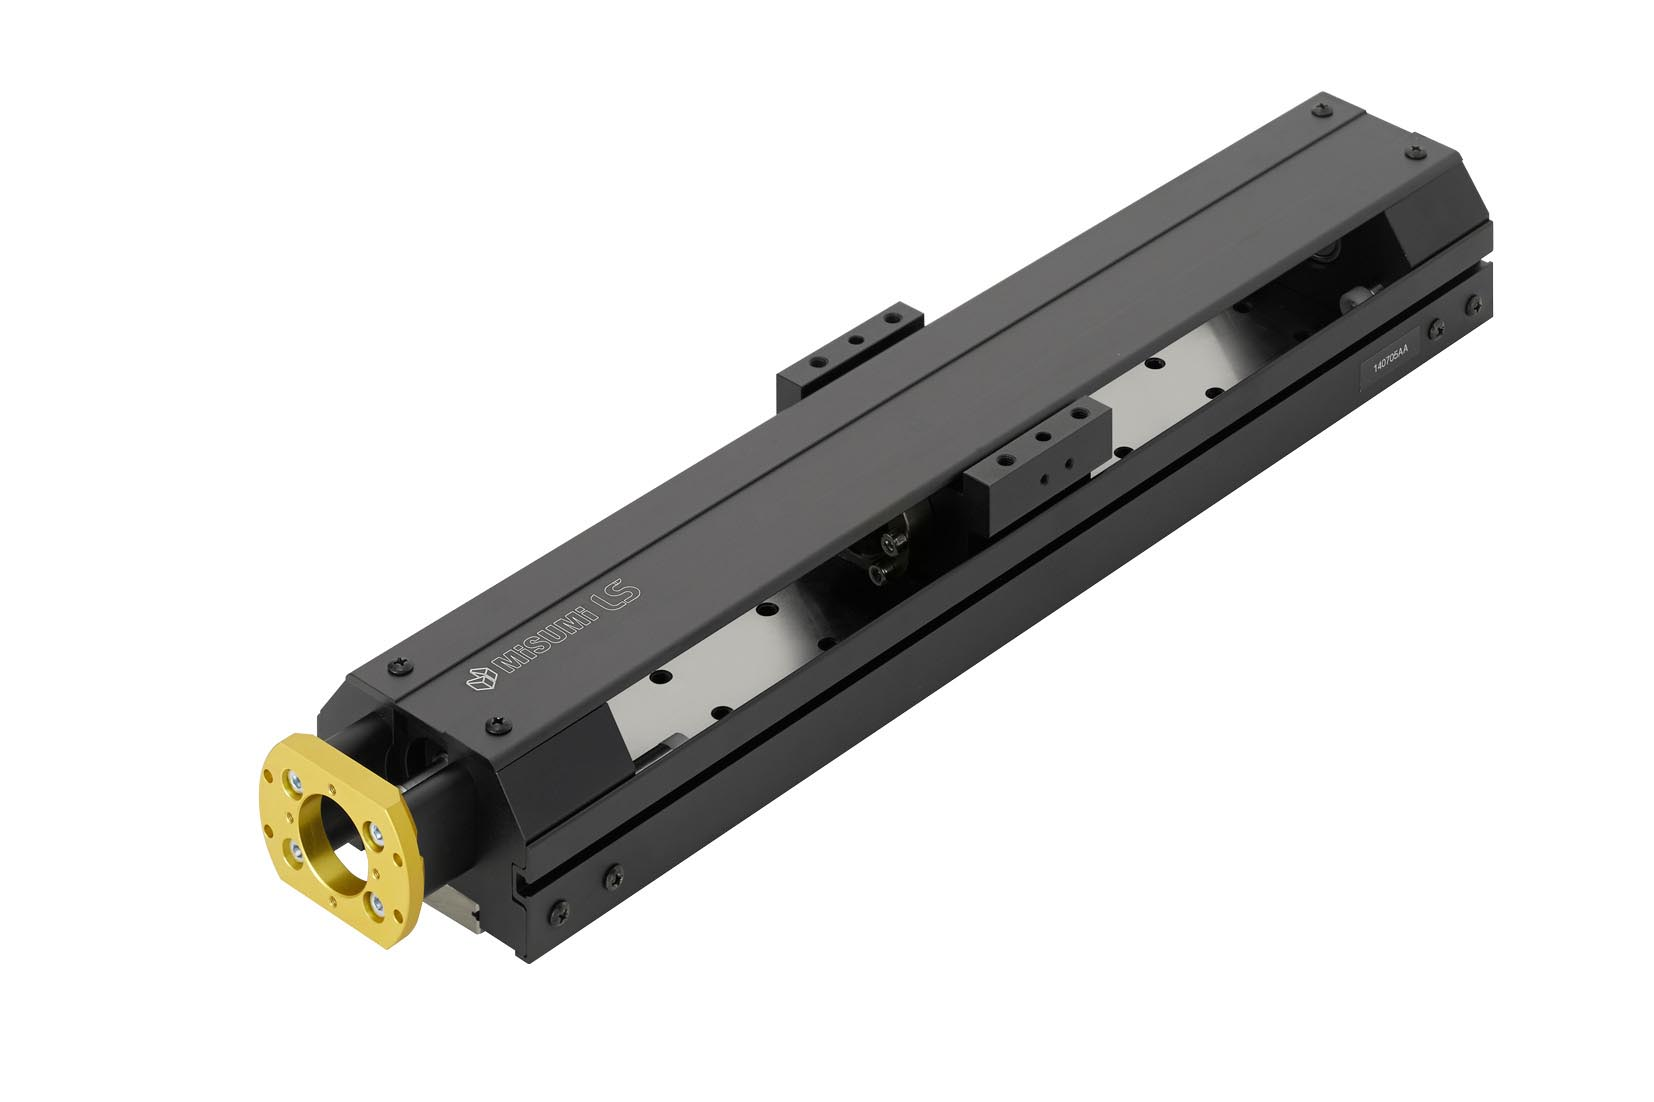 Single Axis Actuators LS12 [C-Value - Driven by Ball Screw]